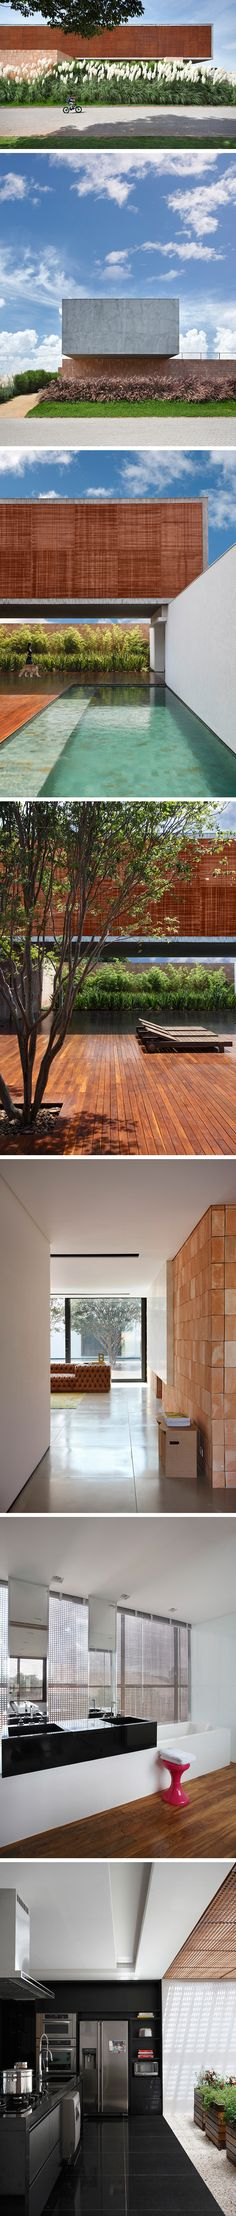 BT House by Guilherme Torres architecture studio in South Brasil.